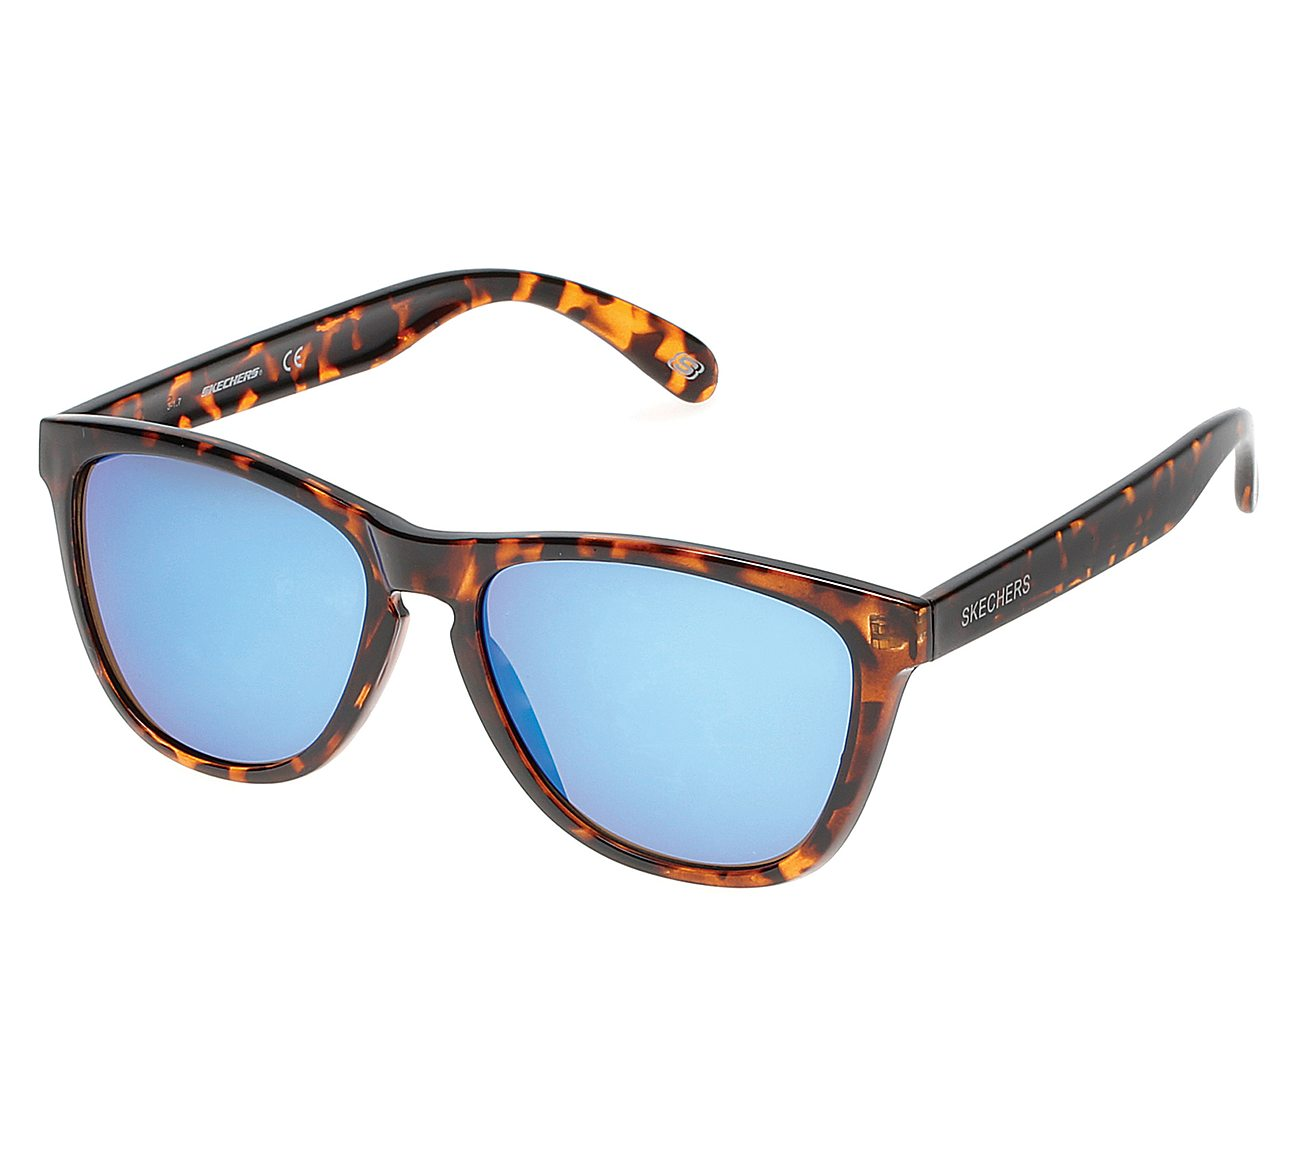 Keyhole Bridge Classic Sunglasses